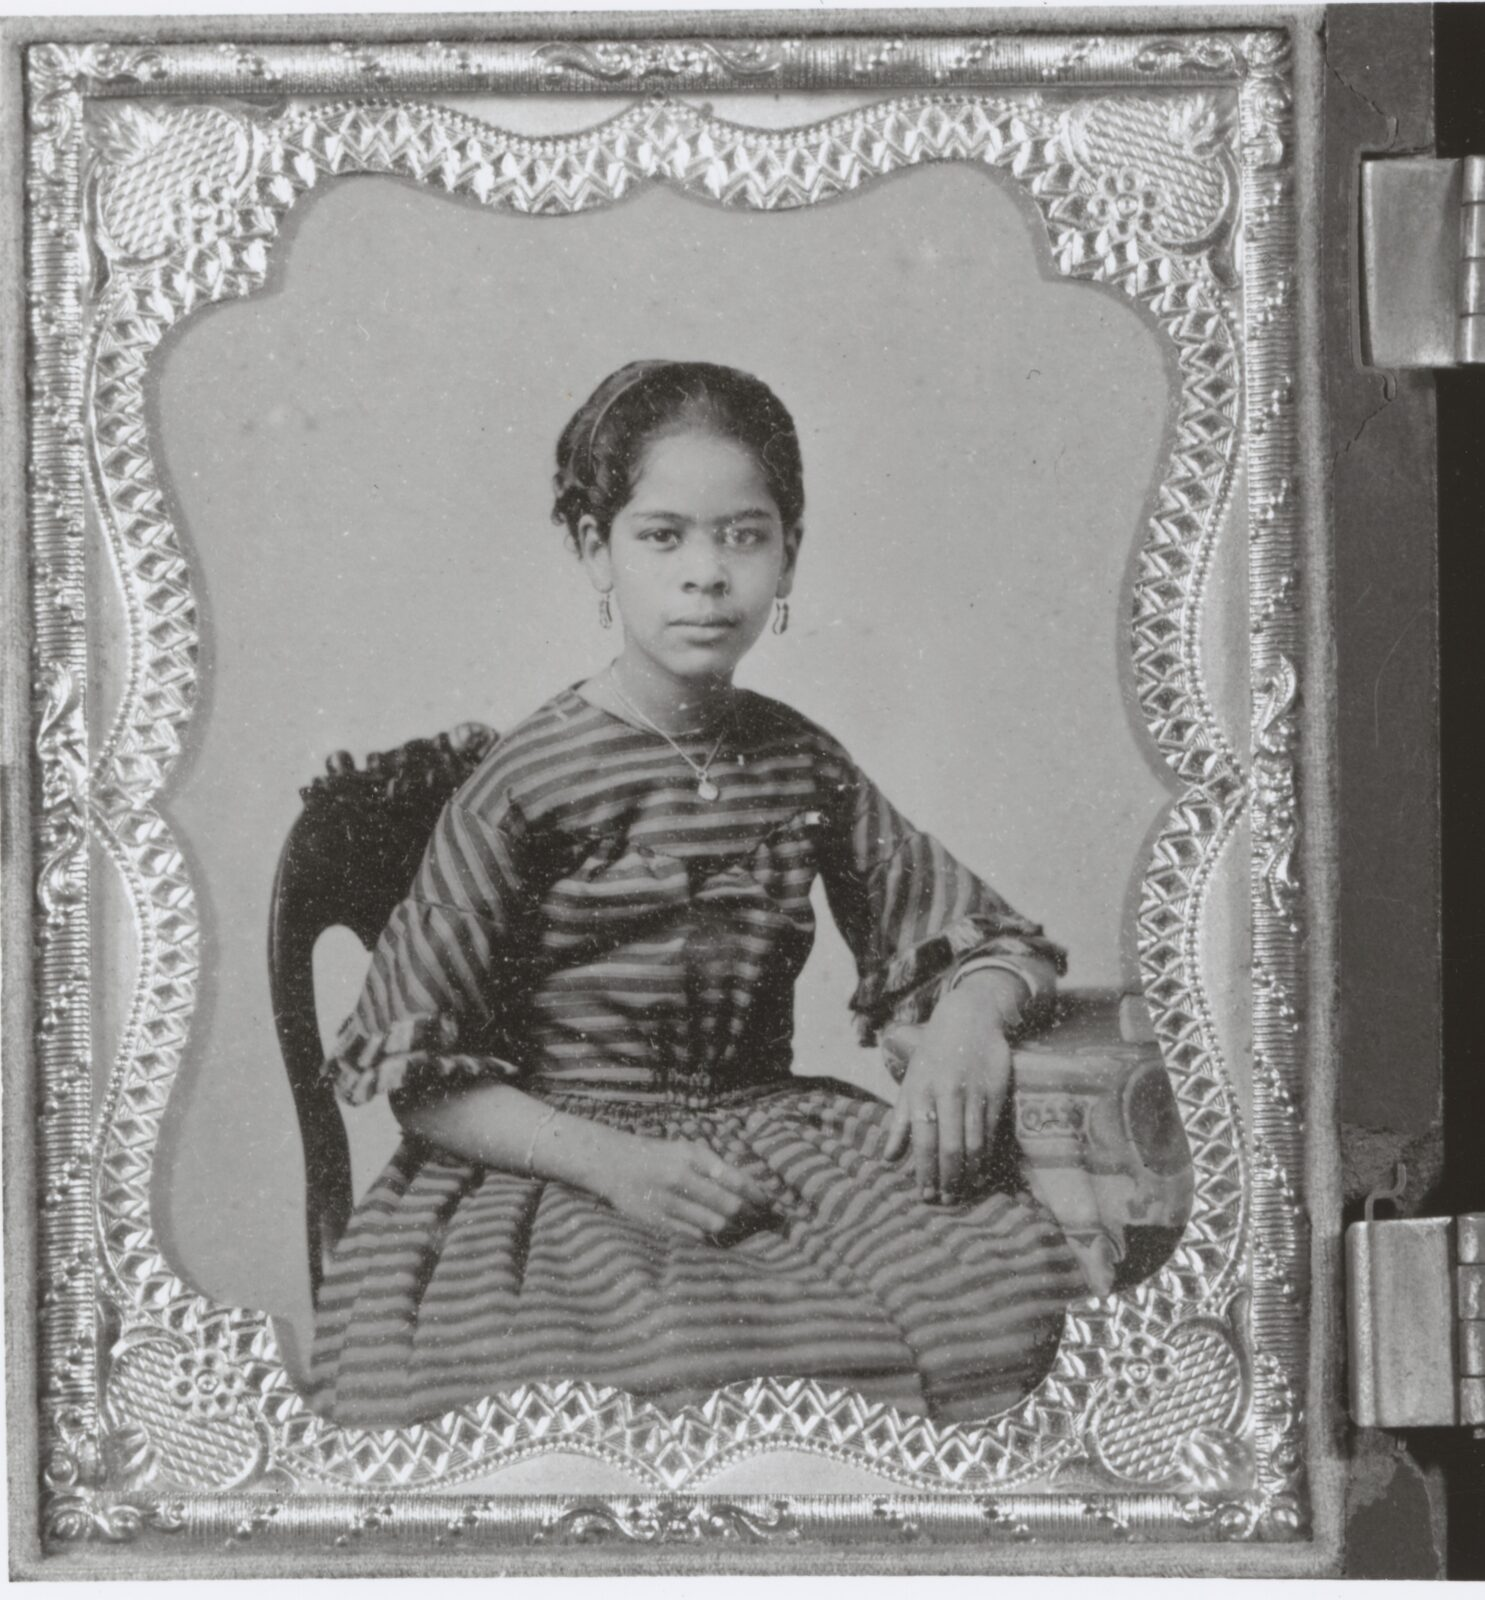 Framed portrait of a young Maritcha Lyons, seated at a table with her hair pulled back in a formal dress with stripes